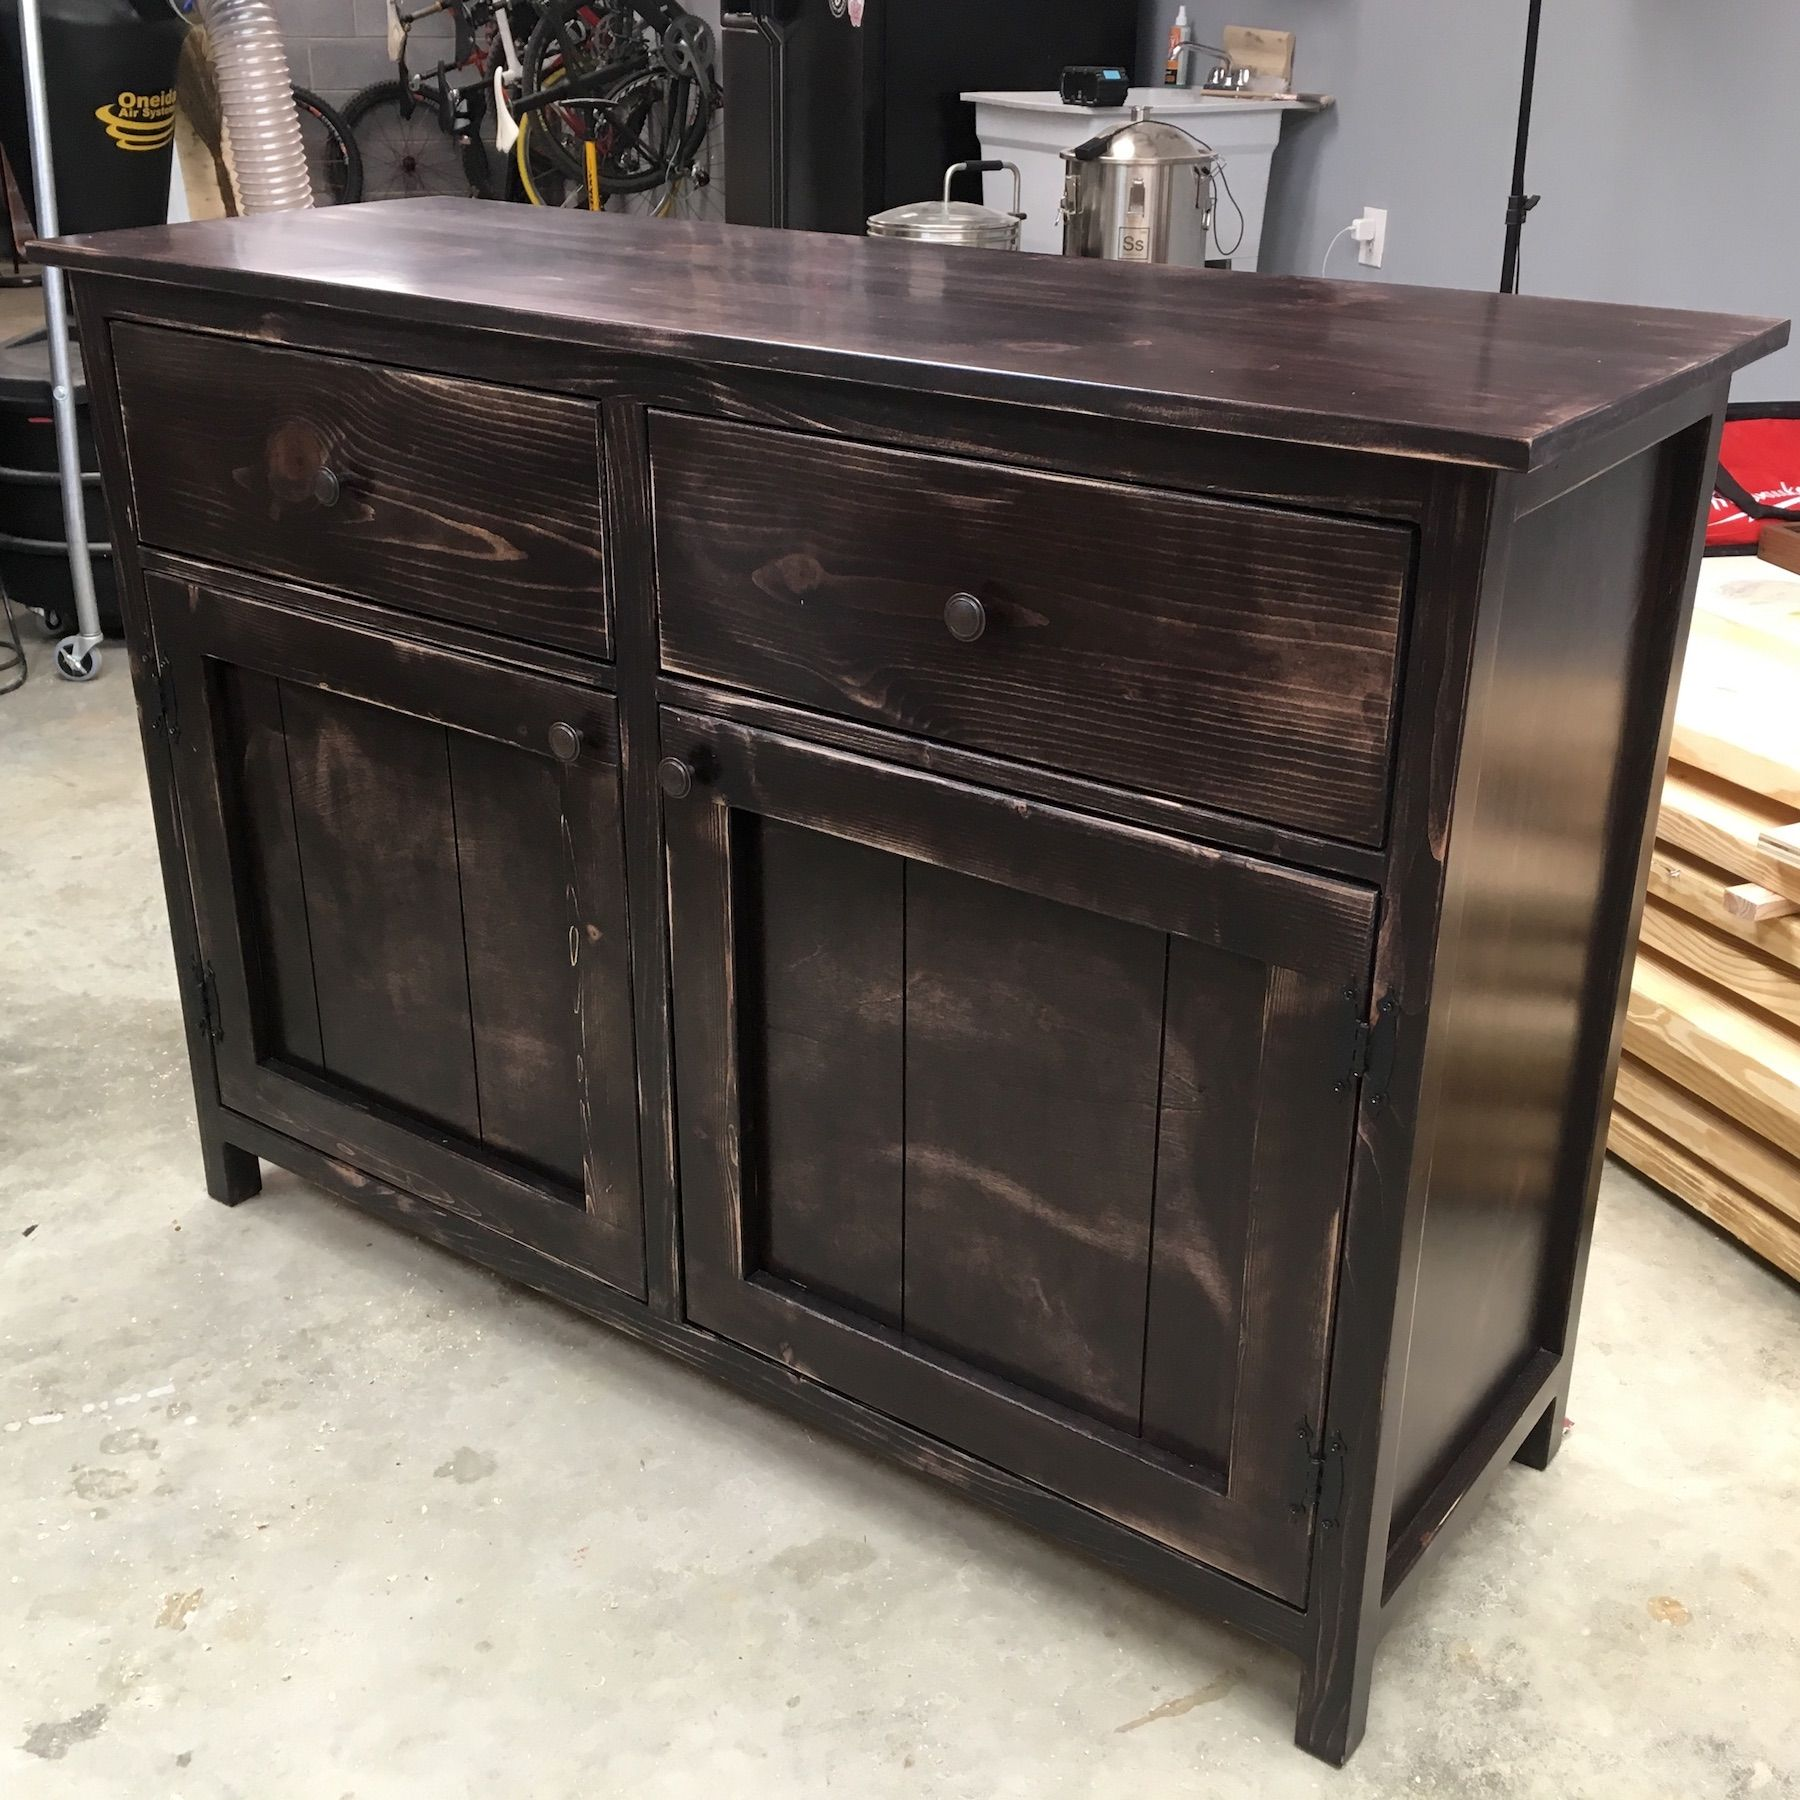 Diy Sideboard Buffet Cabinet Plans Diy Sideboard Diy Sideboard